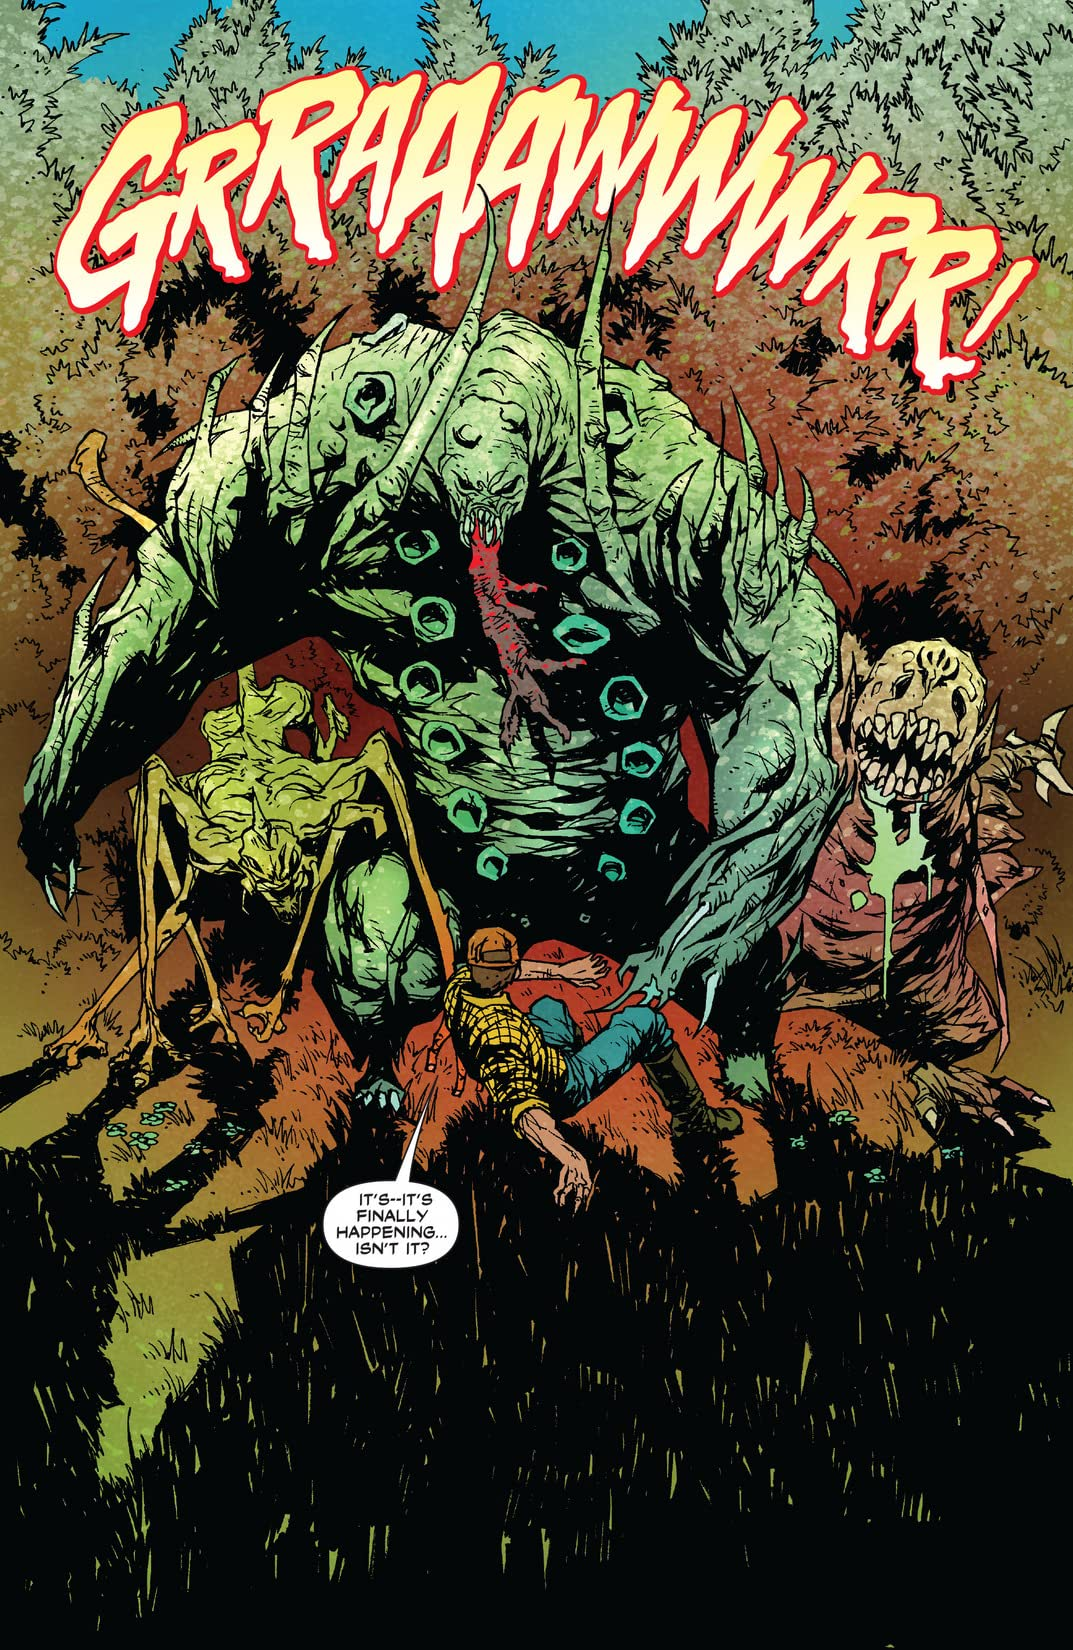 Frankenstein: Agent of S.H.A.D.E. (2011-2013) Vol. 1: War of the Monsters